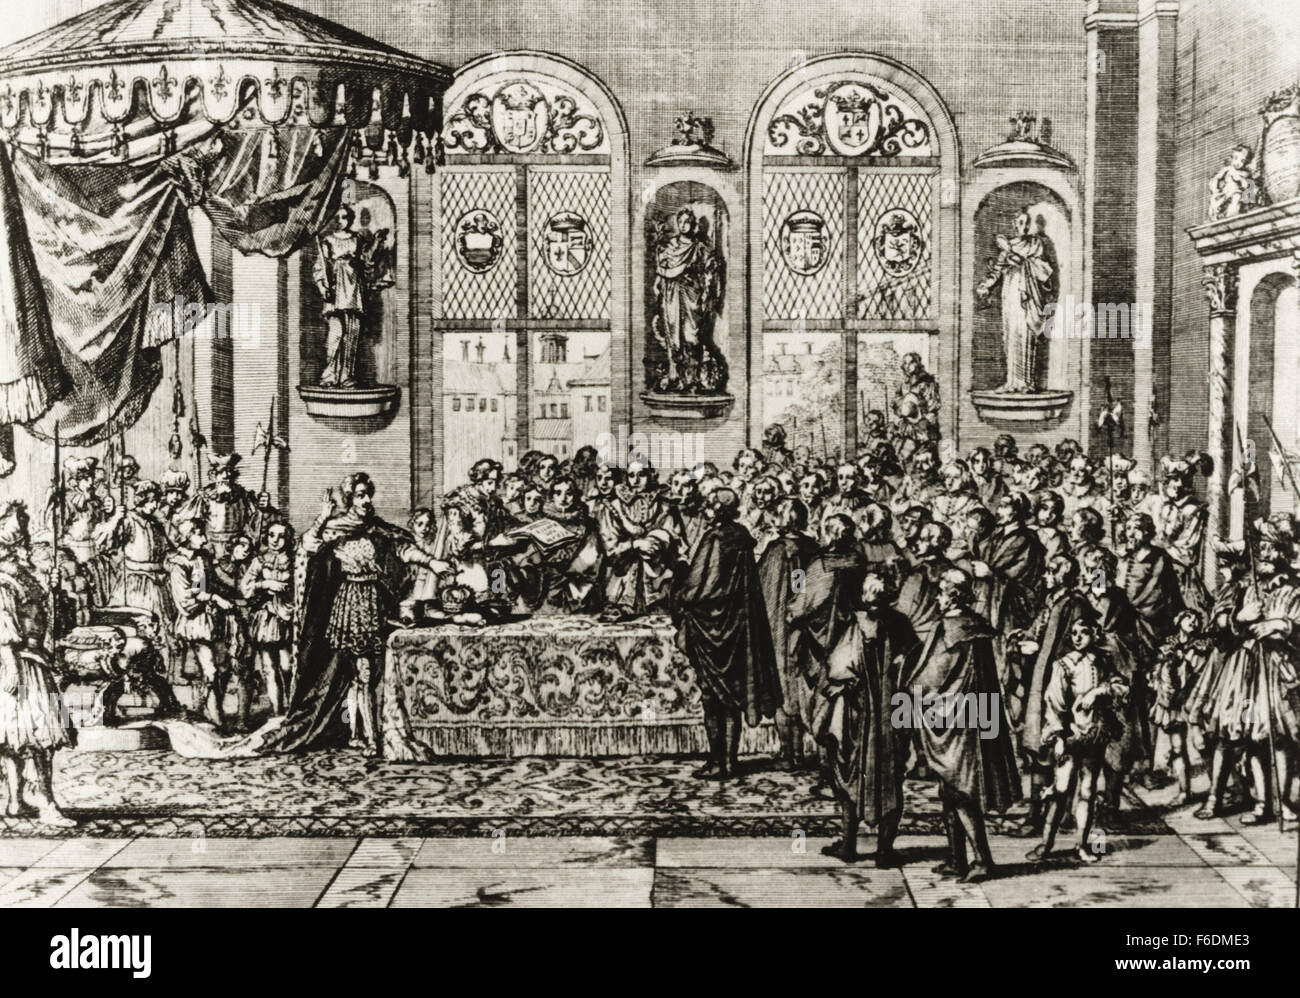 France. Paris. Edict of Nantes by King Henry IV, 30 April 1598. Ratification. Engraving. - Stock Image